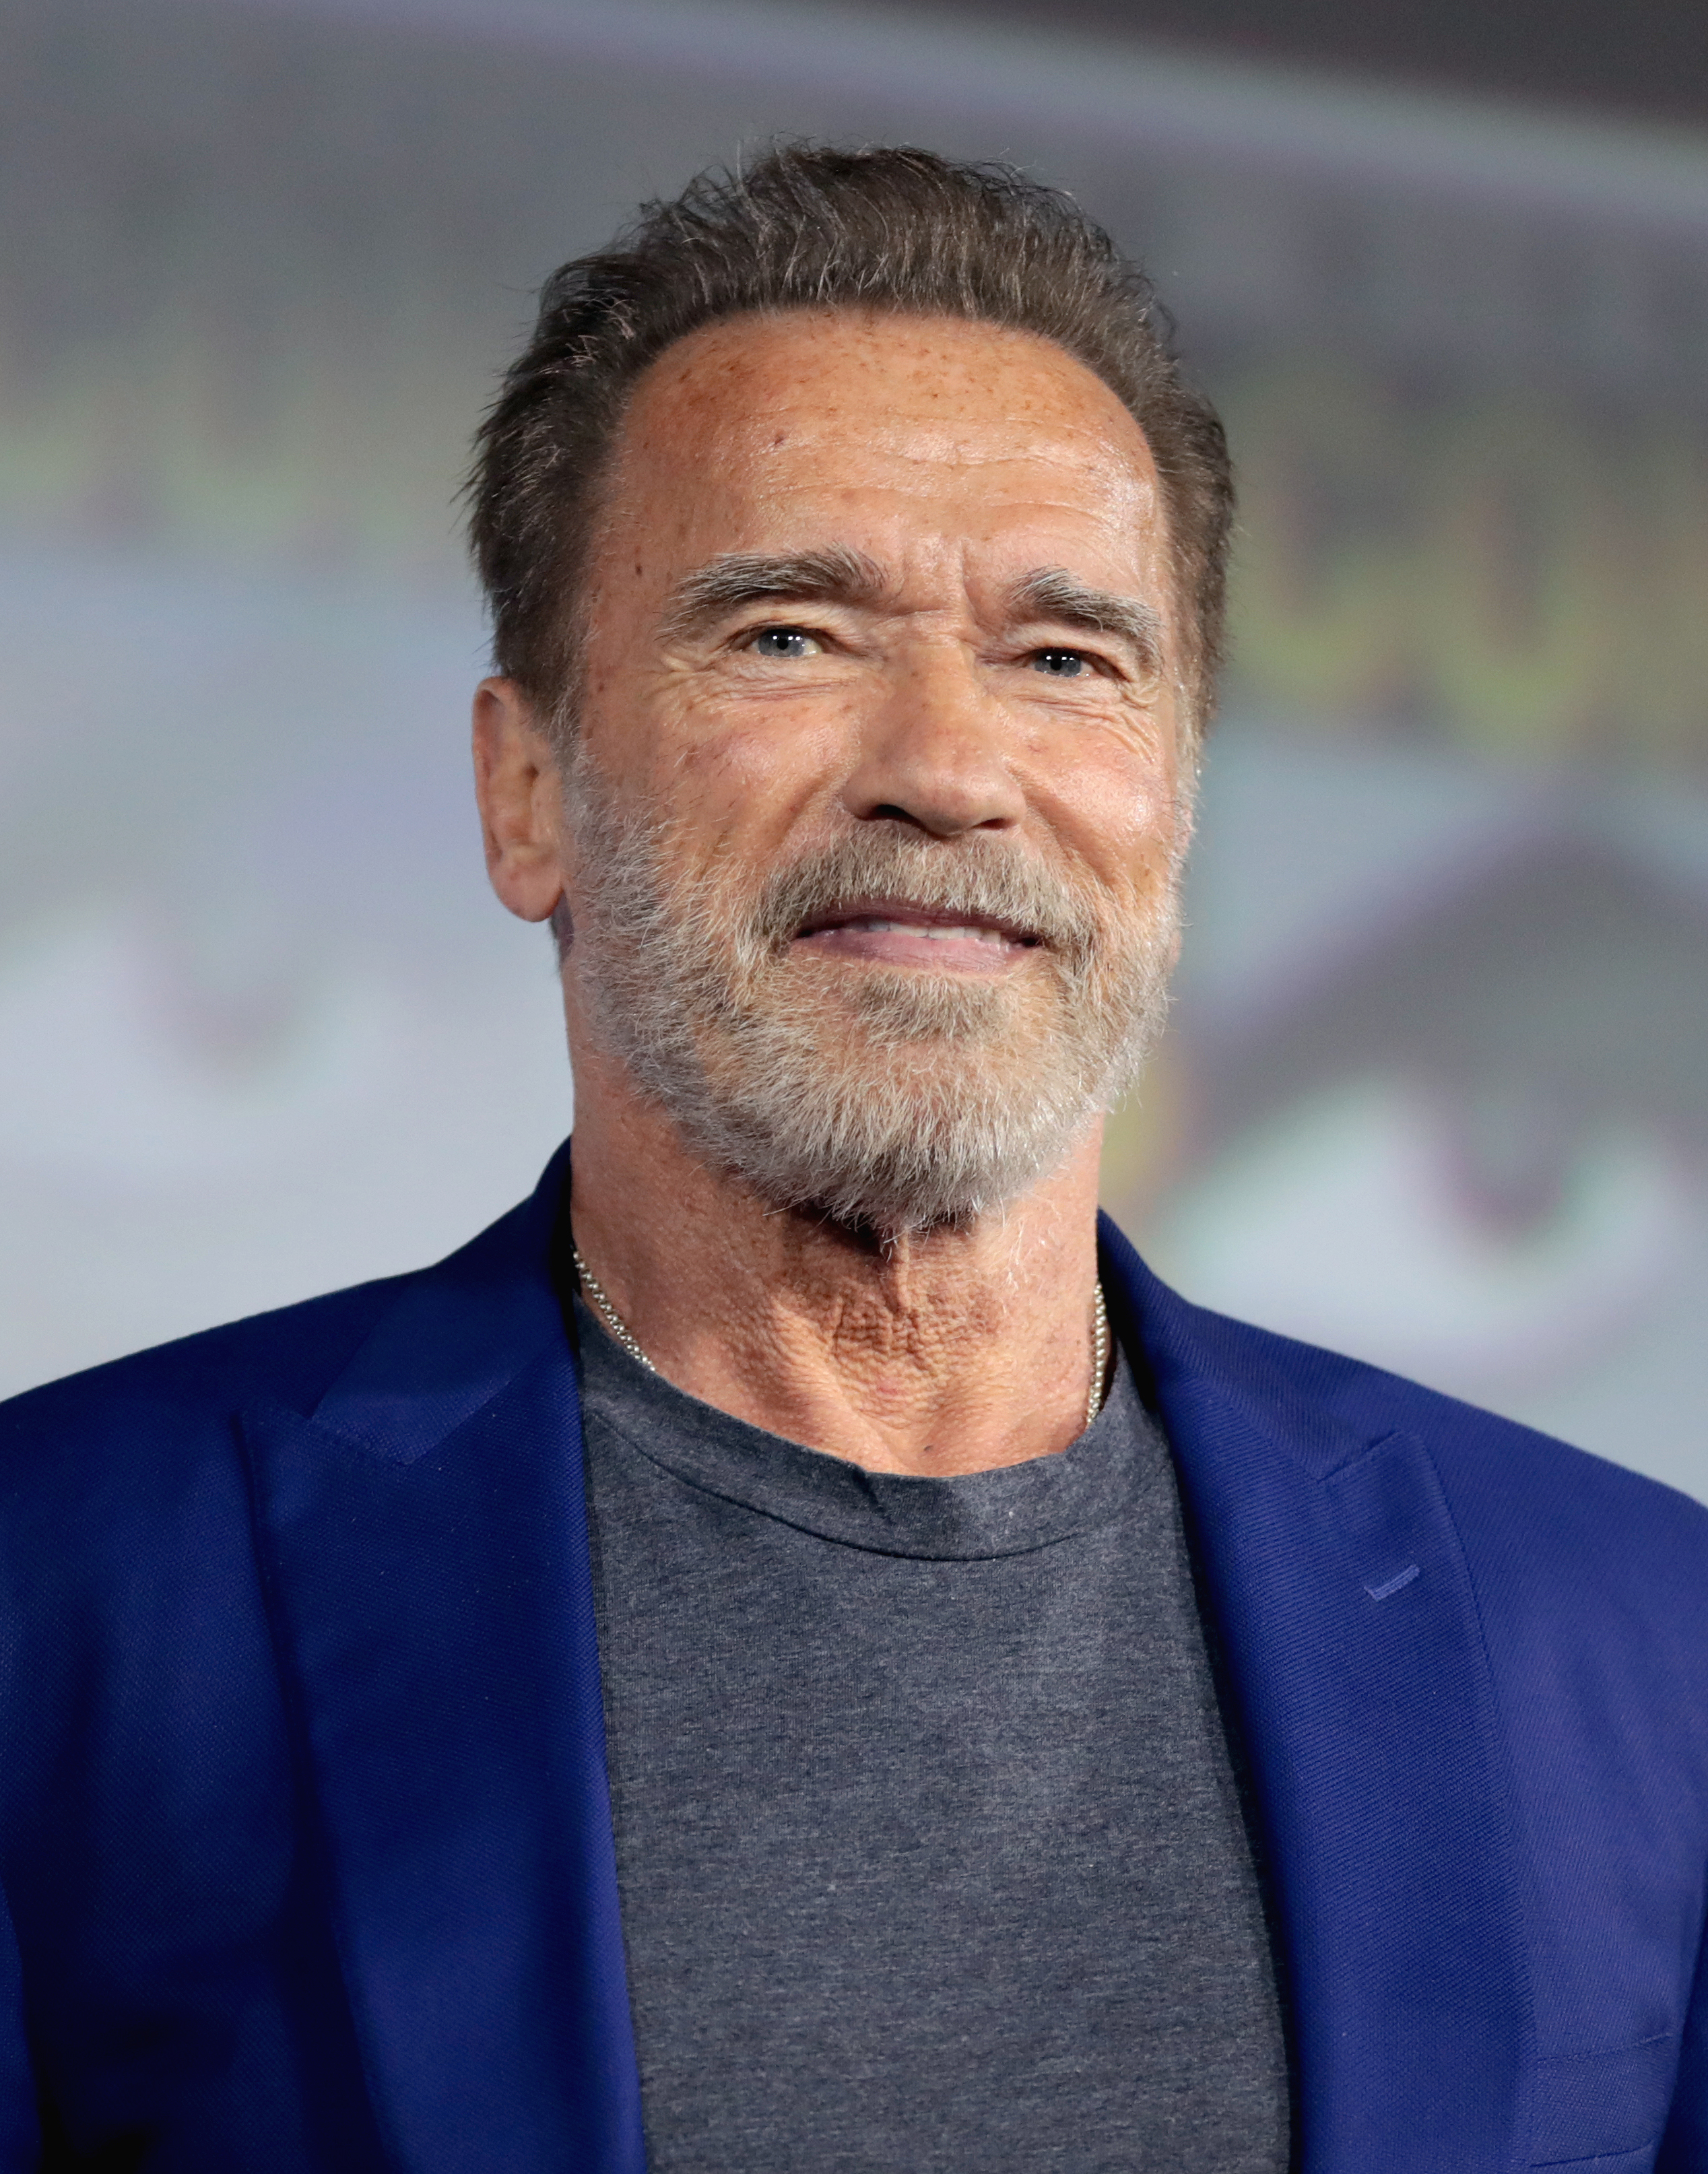 Schwarzenegger at the 2019 [[San Diego Comic-Con]]